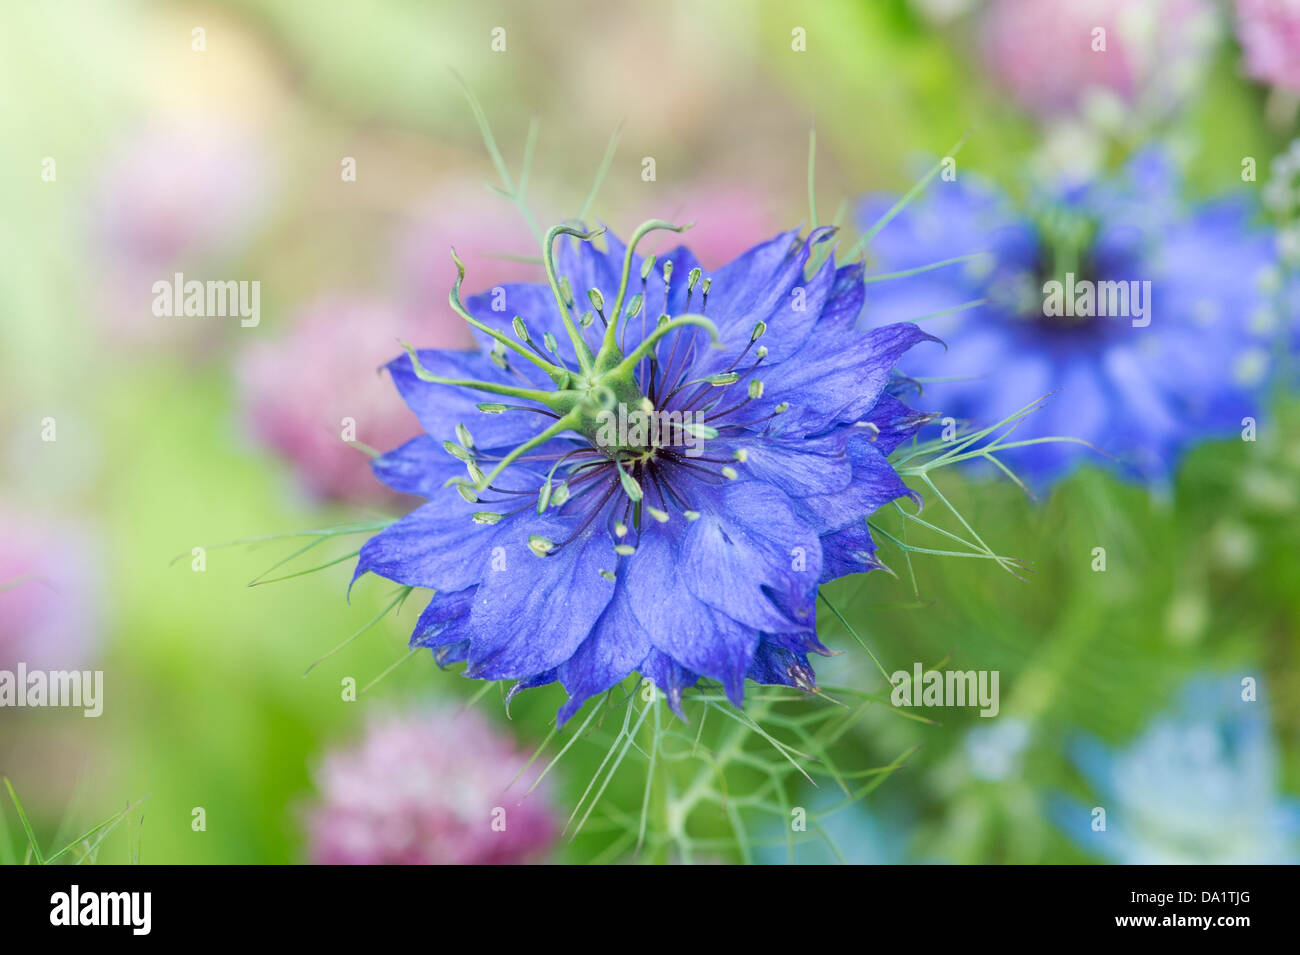 Blue mist flower growing stock photos blue mist flower growing love in a mist flower stock image izmirmasajfo